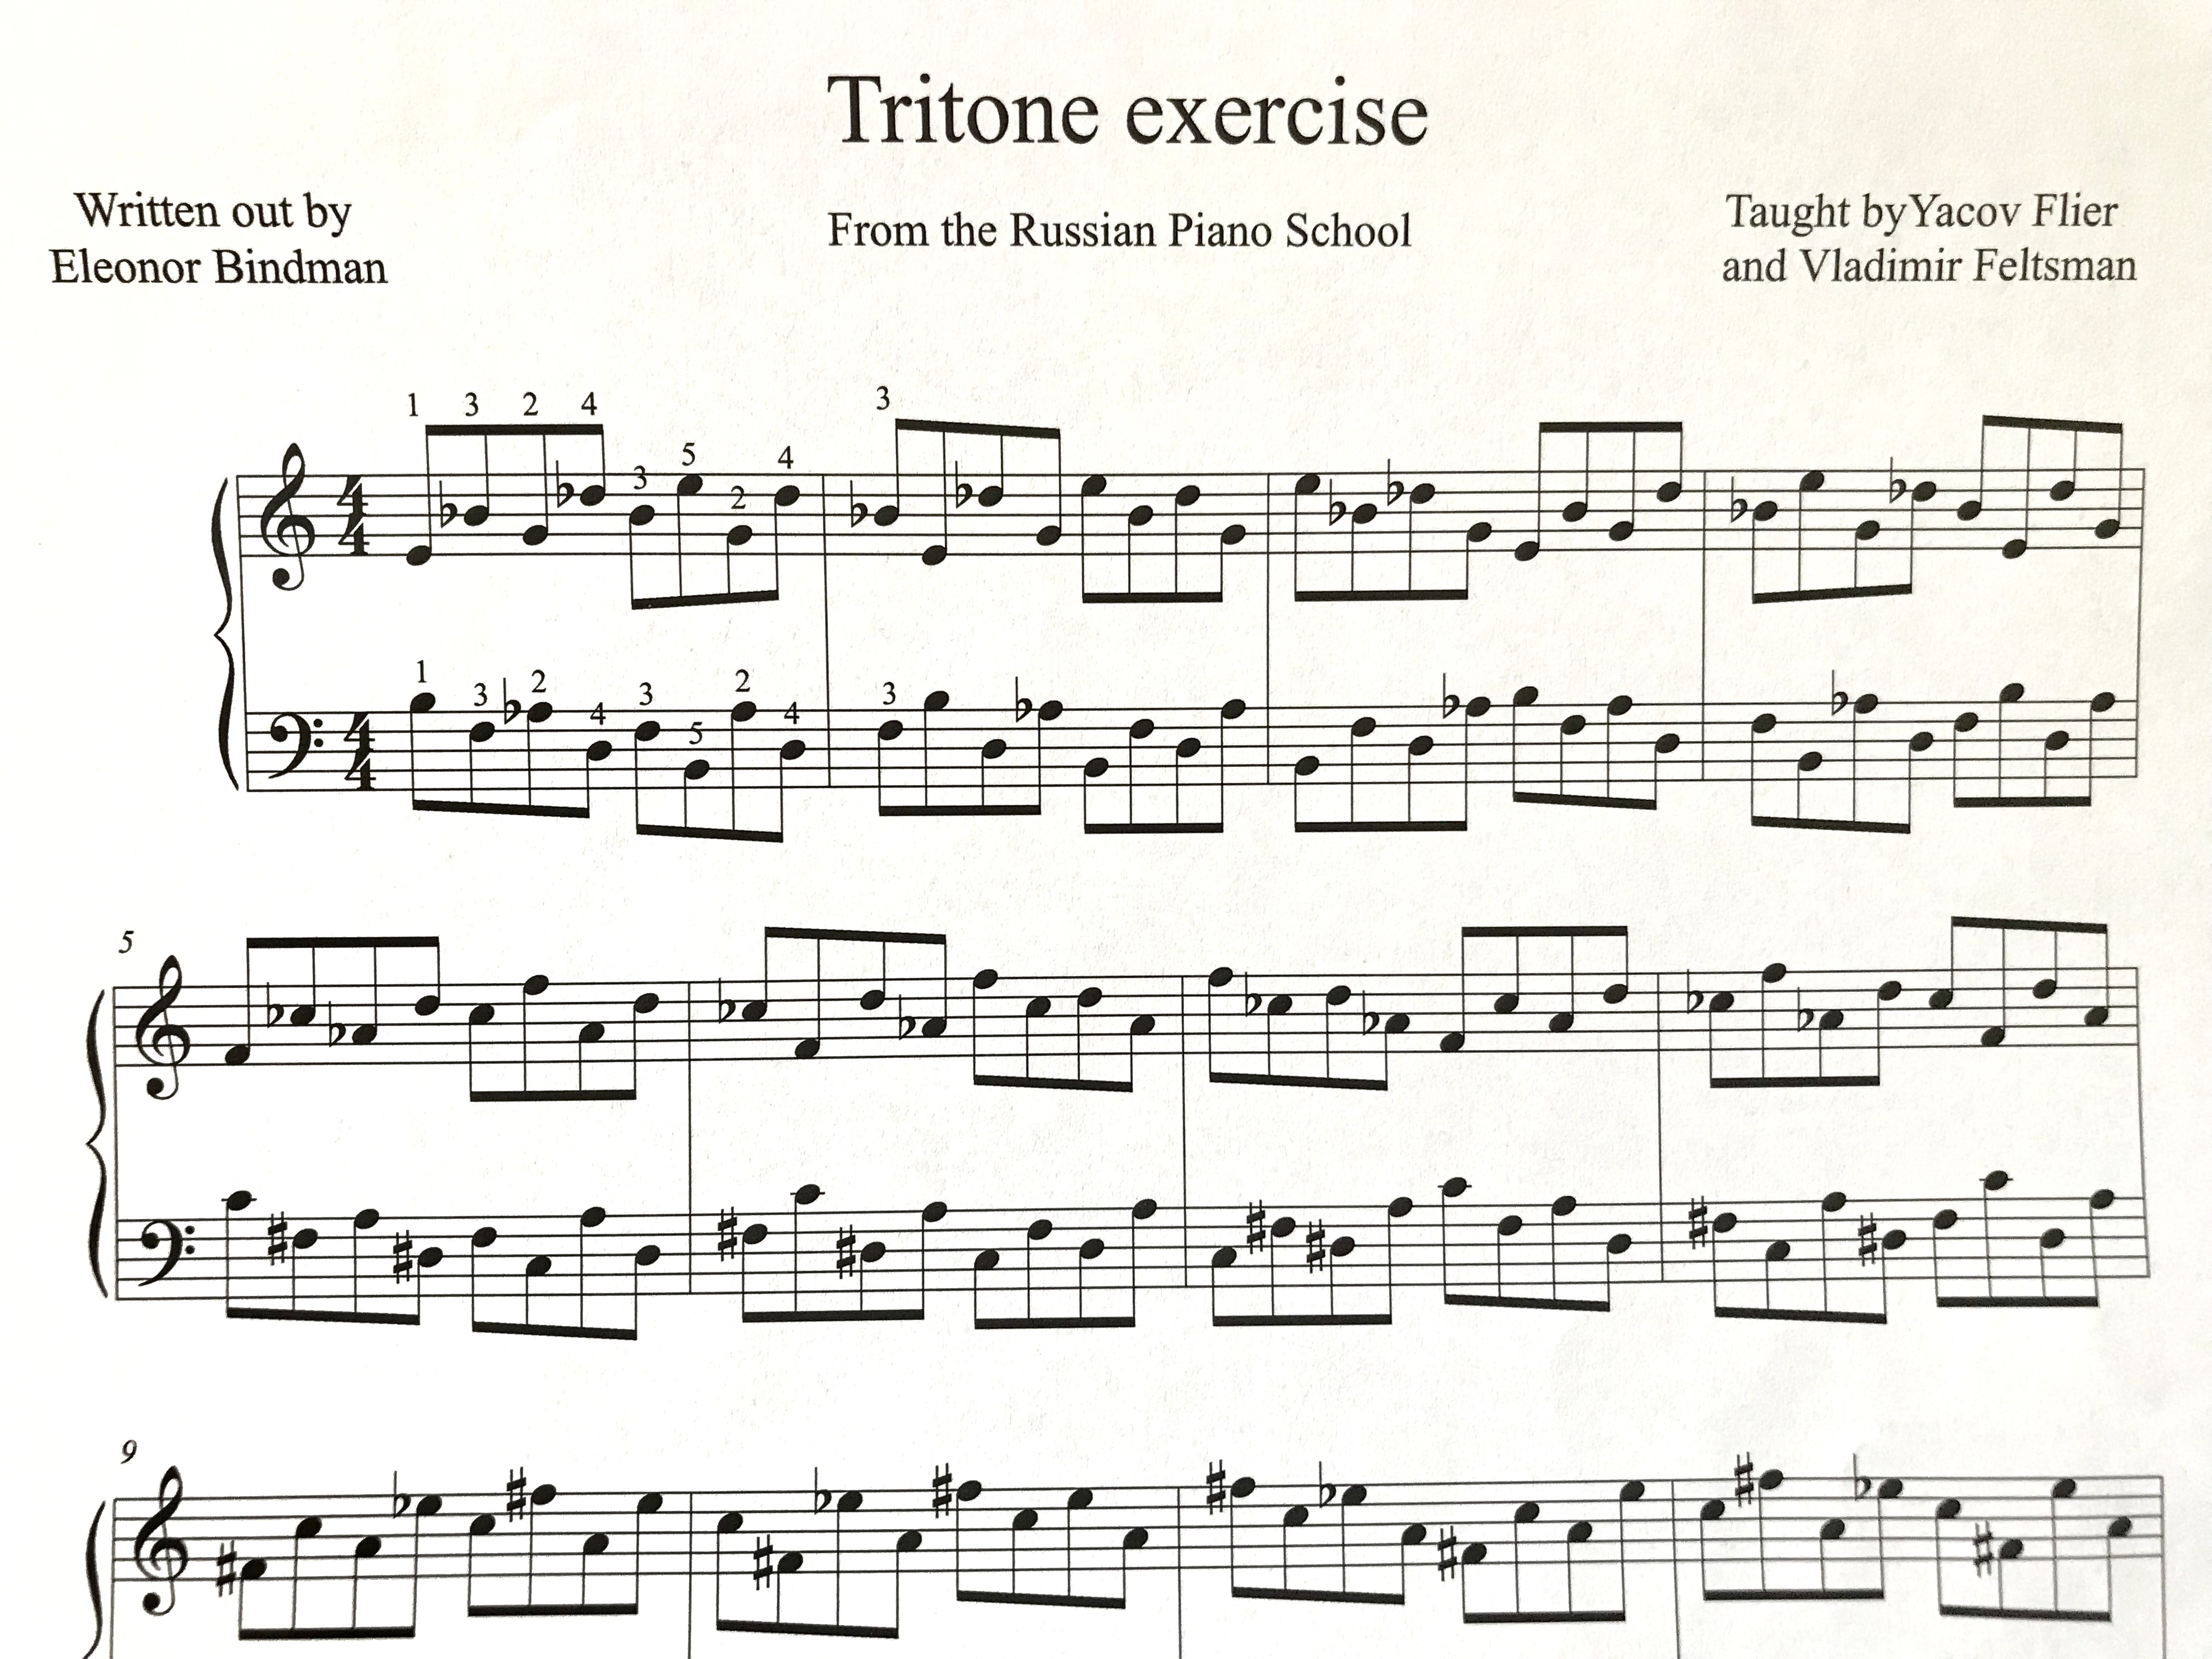 Tritone Exercise from Vladimir Feltsman